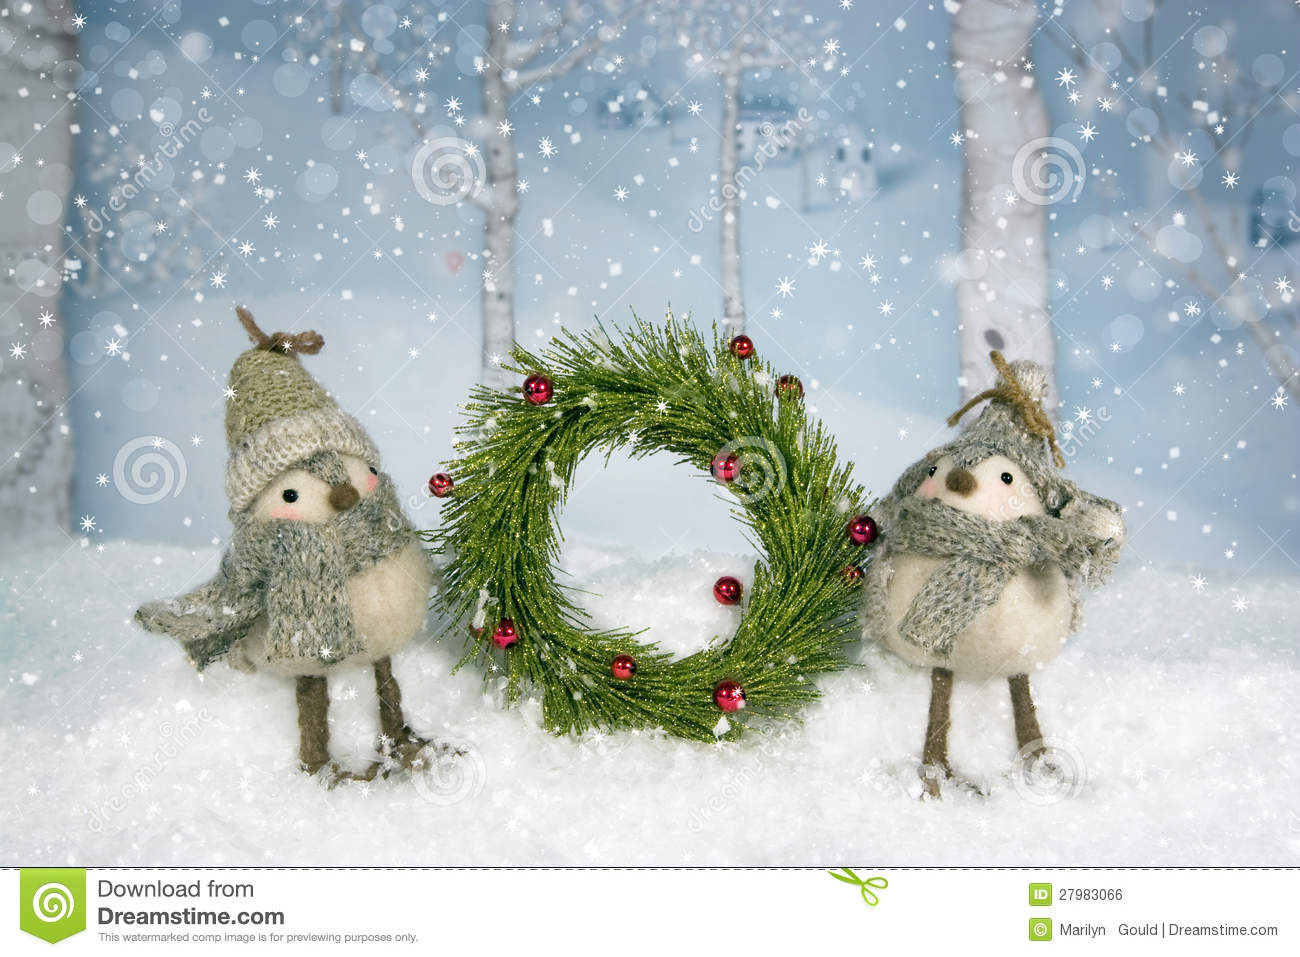 Happy New Year 3d Wallpaper Download Christmas Birds Wreath Royalty Free Stock Image Image